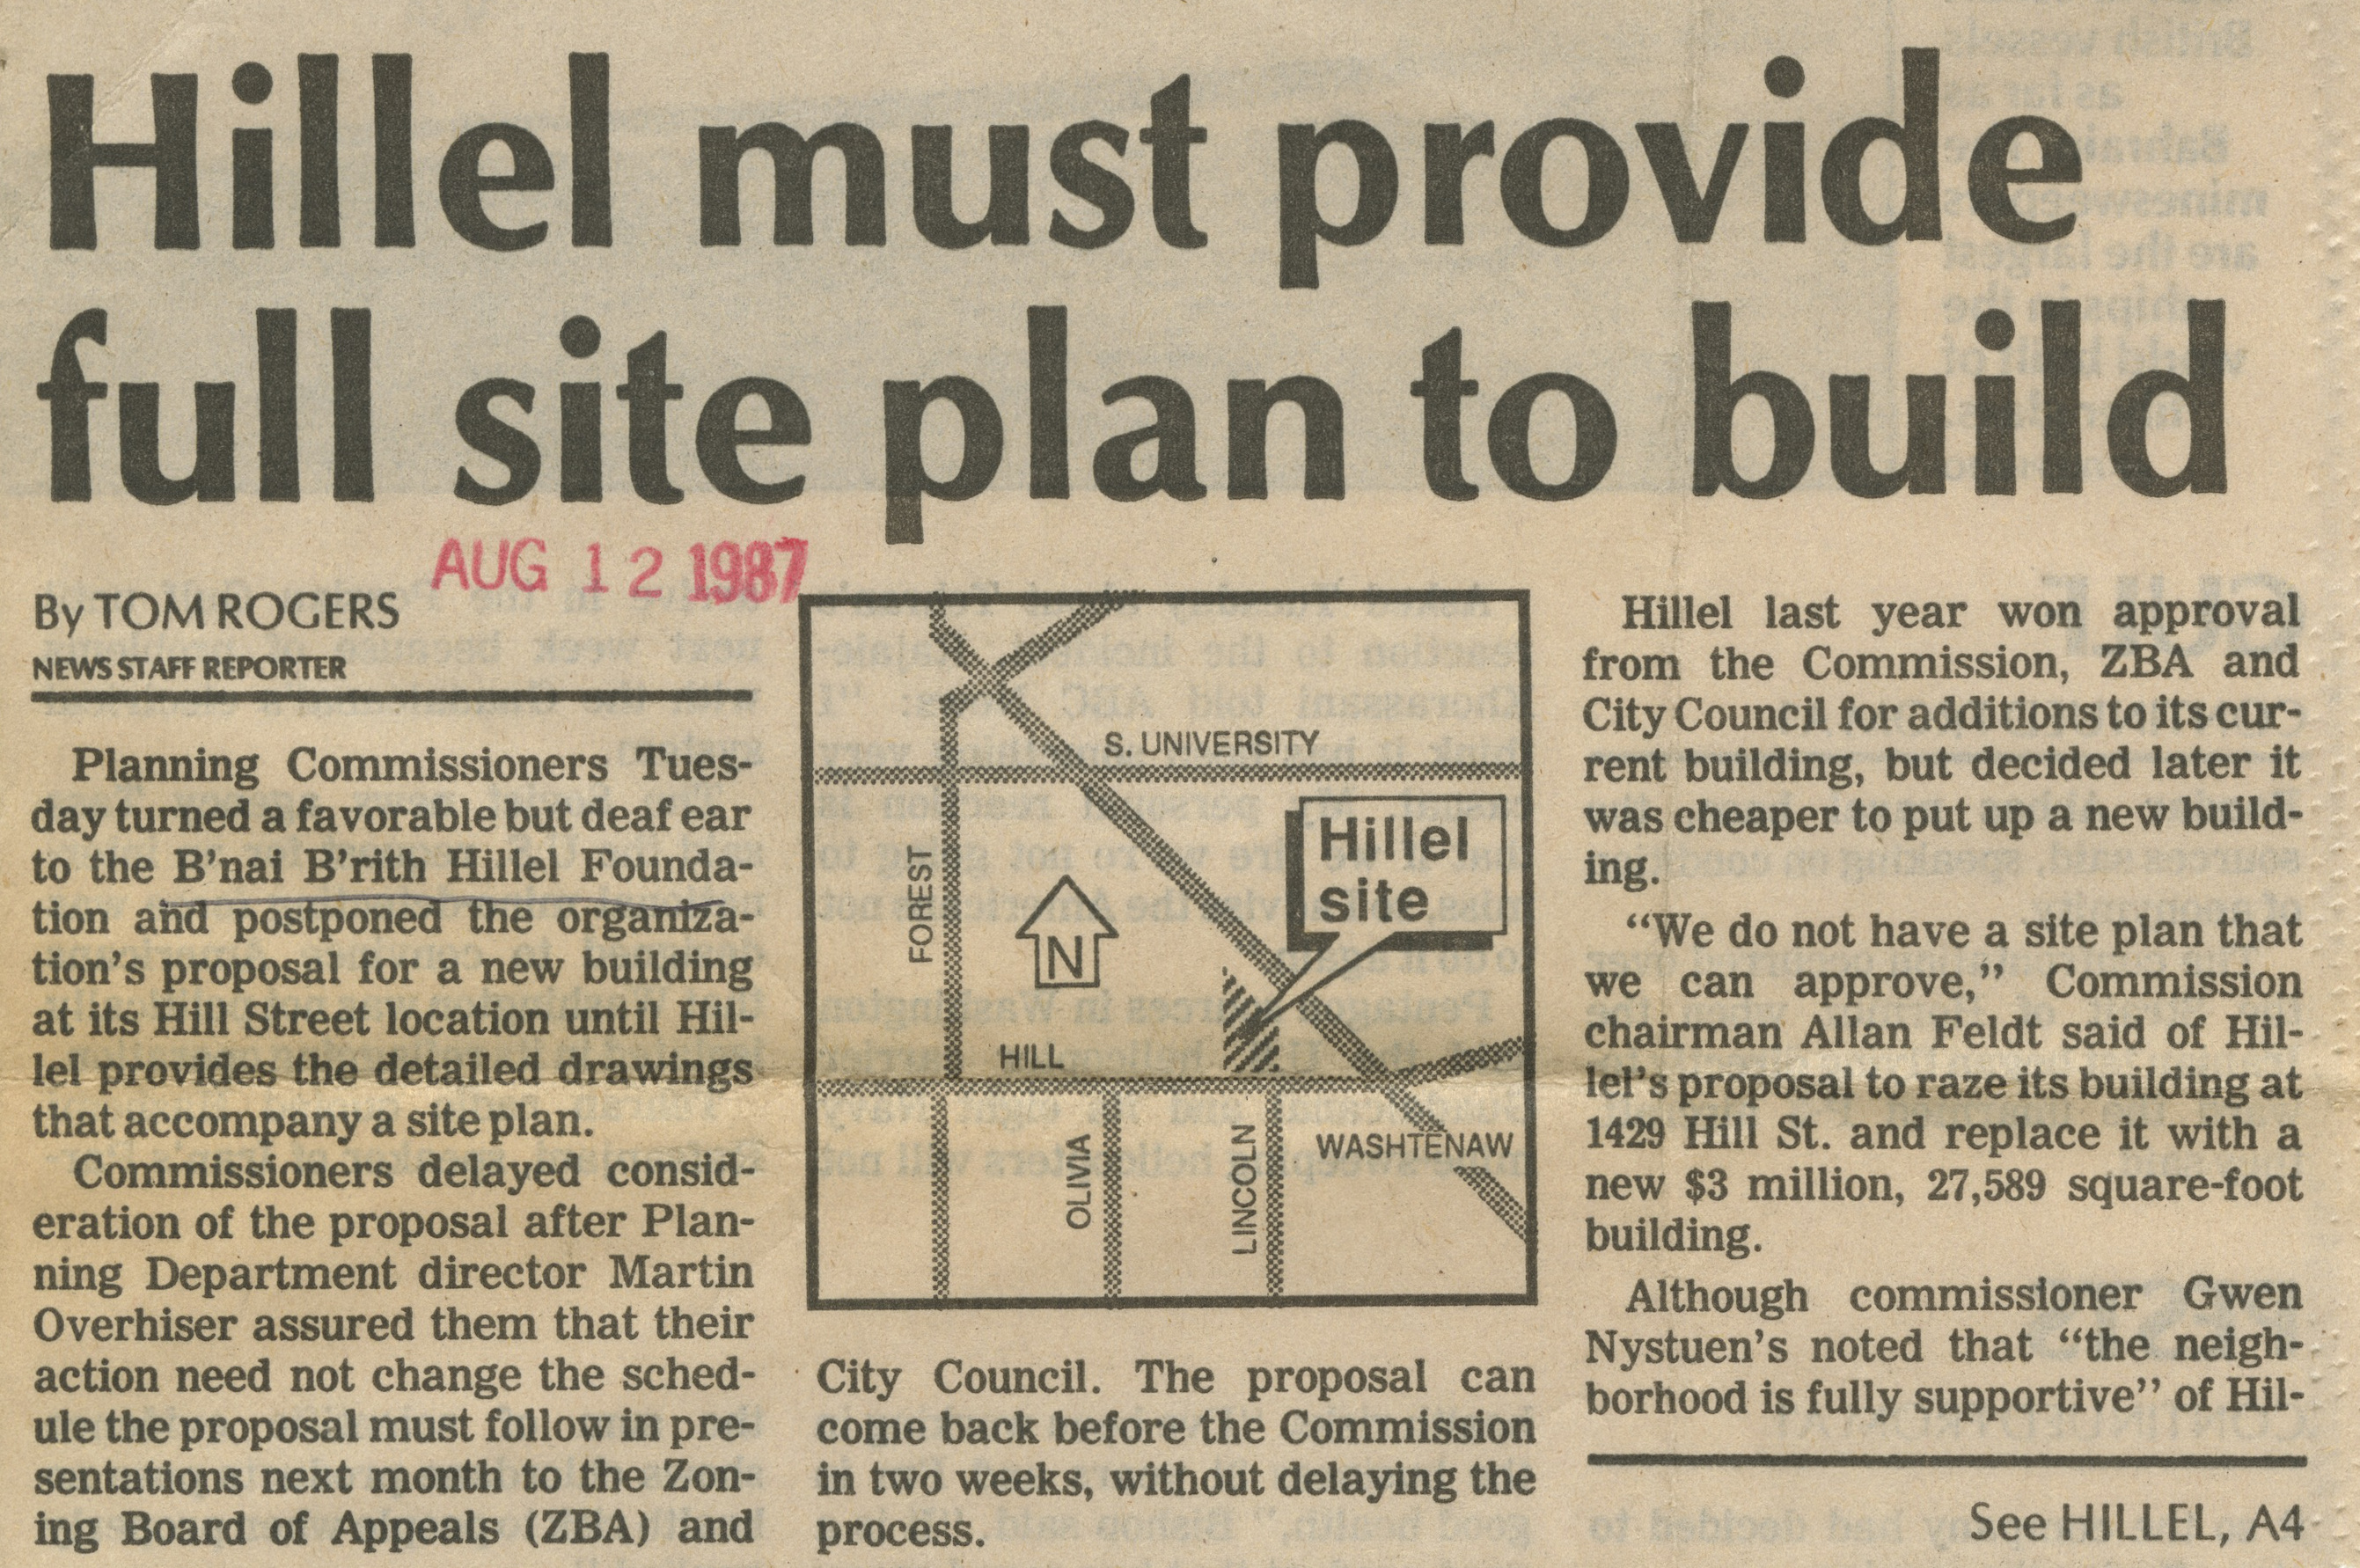 Hillel Must Provide Full Site Plan To Build image